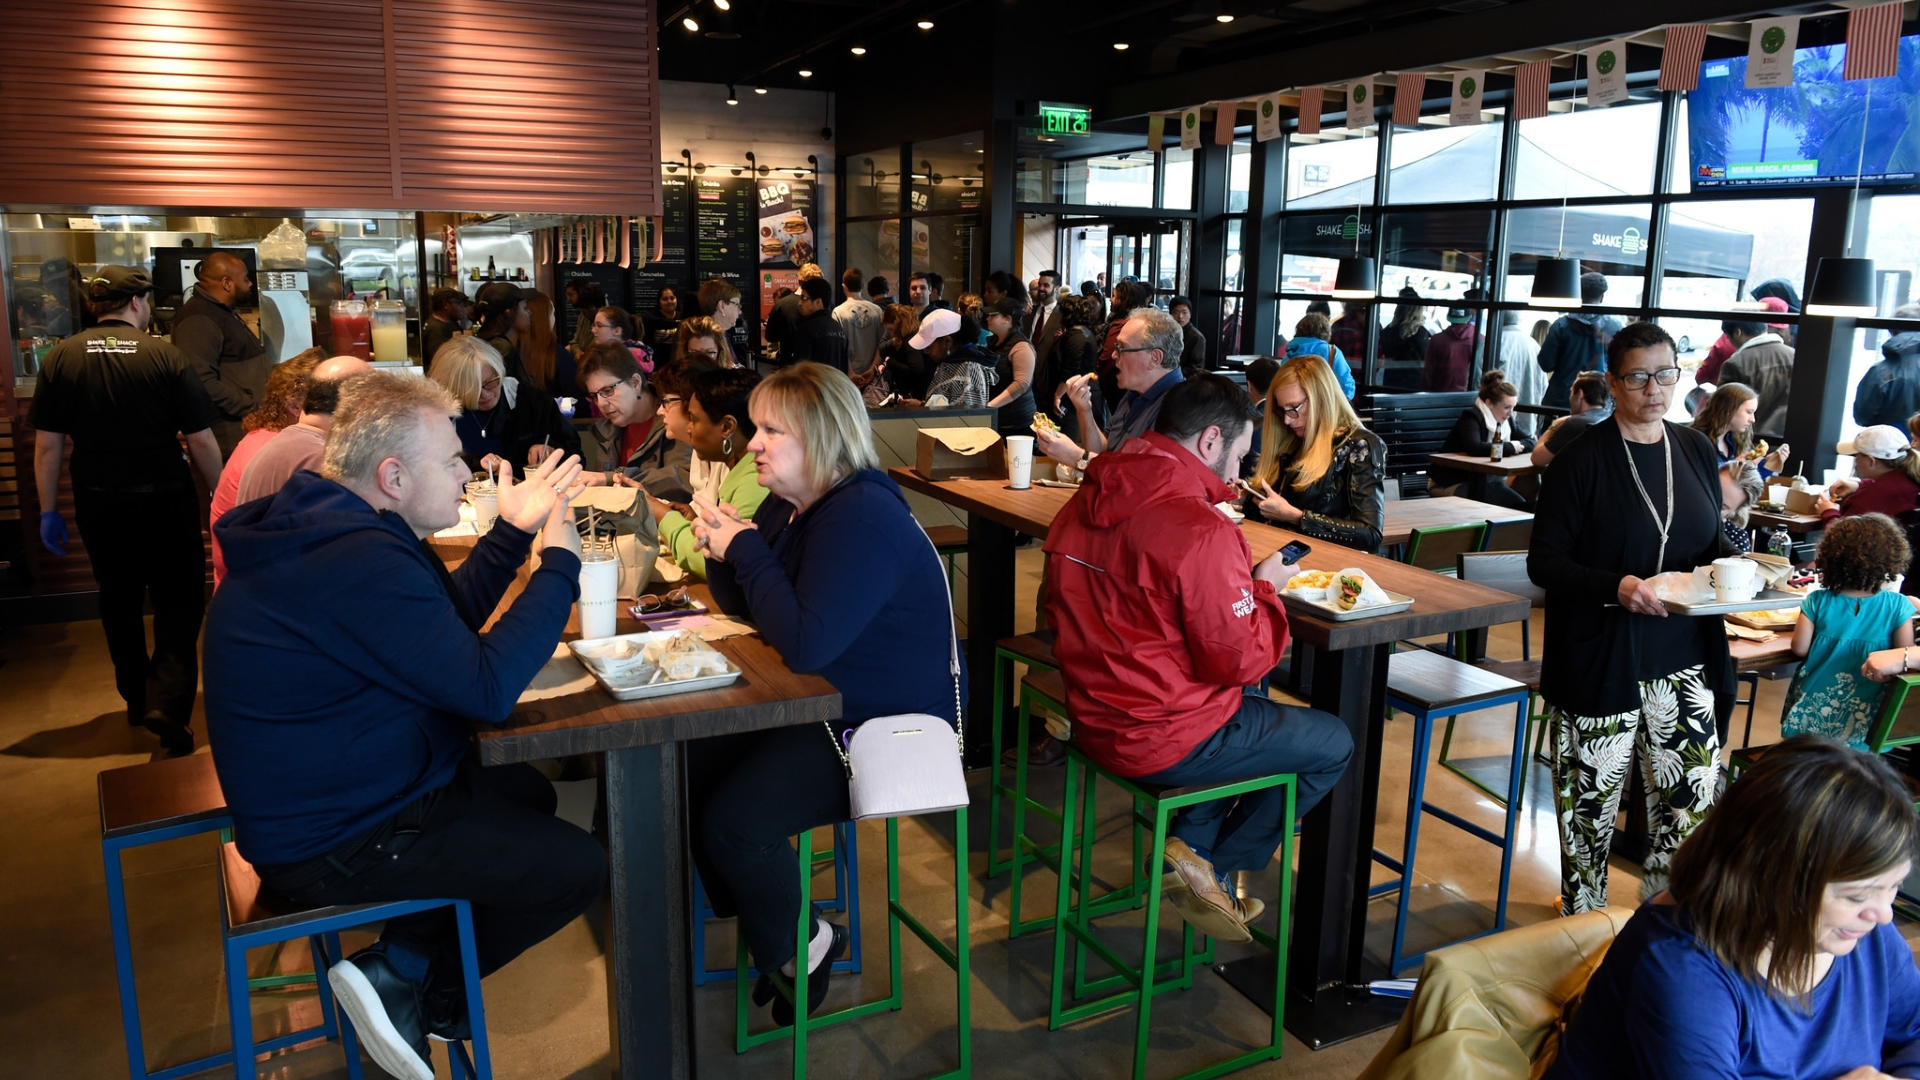 West Hartford Shake Shack Opens To A Large, Happy Crowd